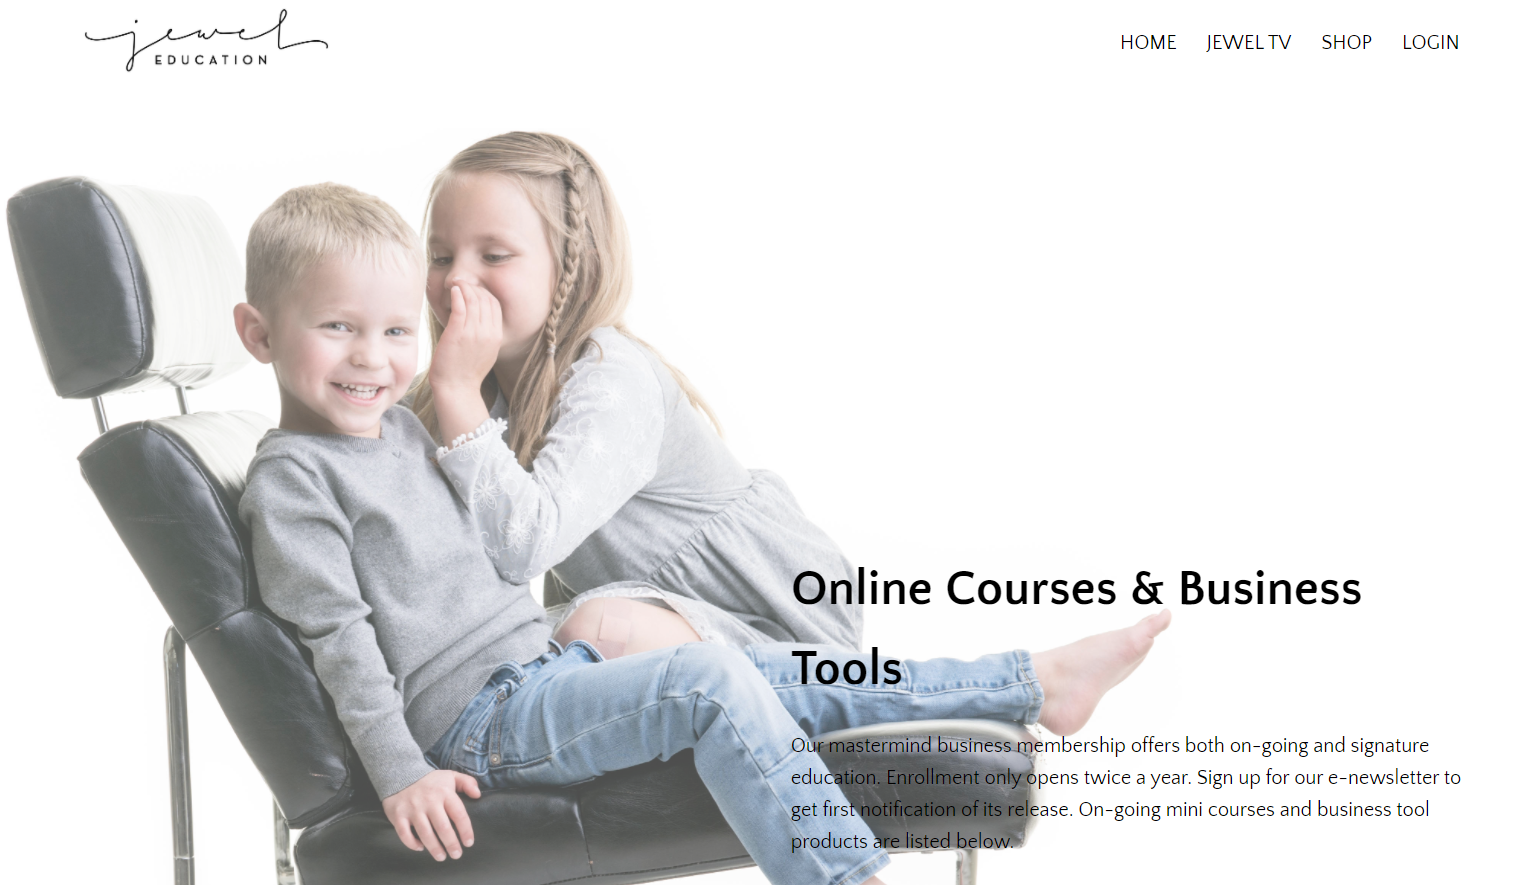 The Jewel Education website with an image of two young children in a black leather chair